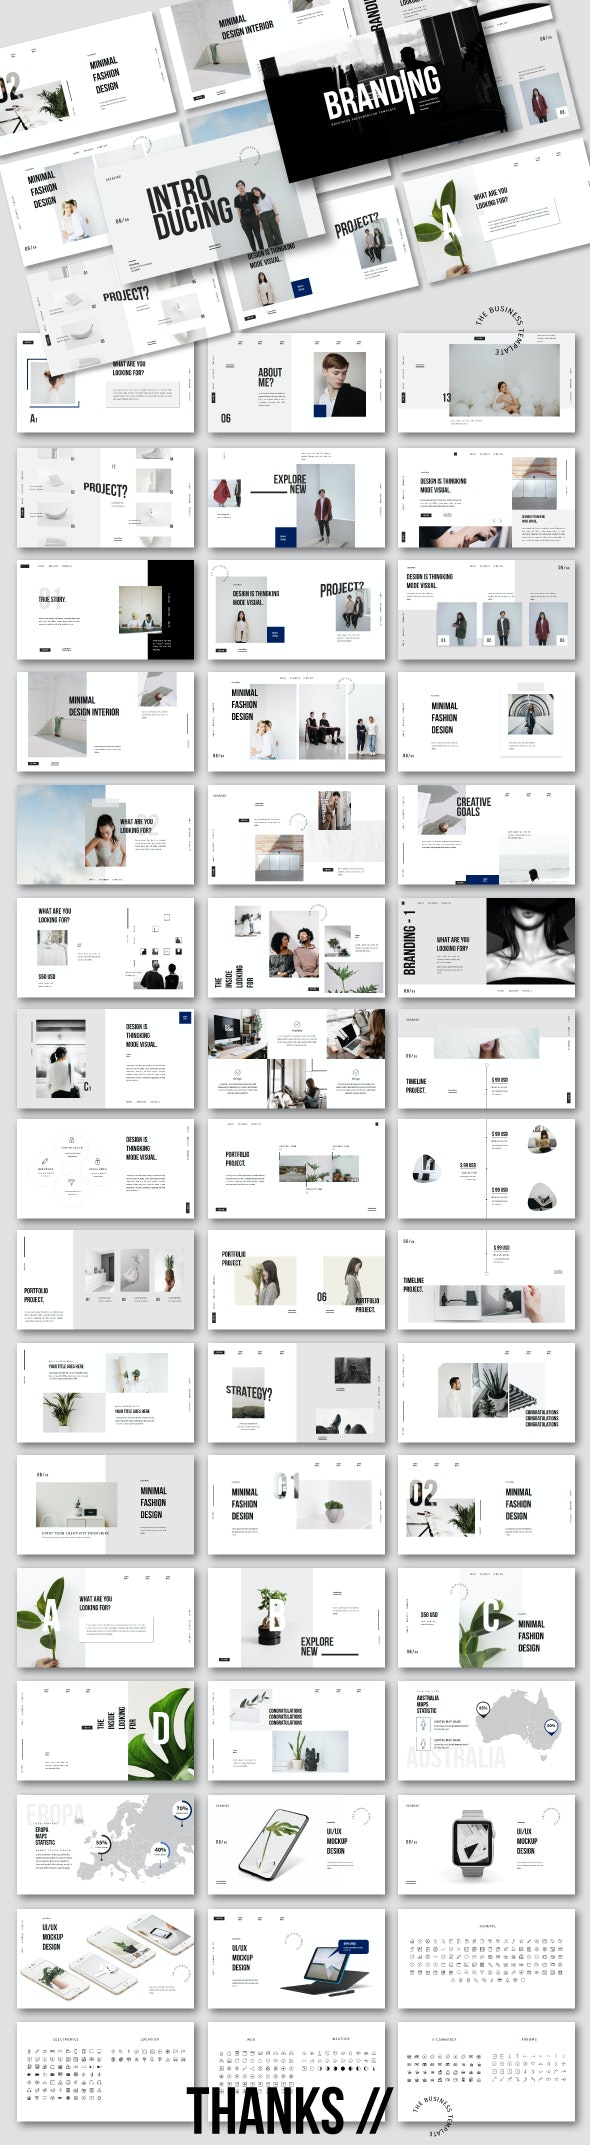 Branding - Business Googleslide - Google Slides Presentation Templates